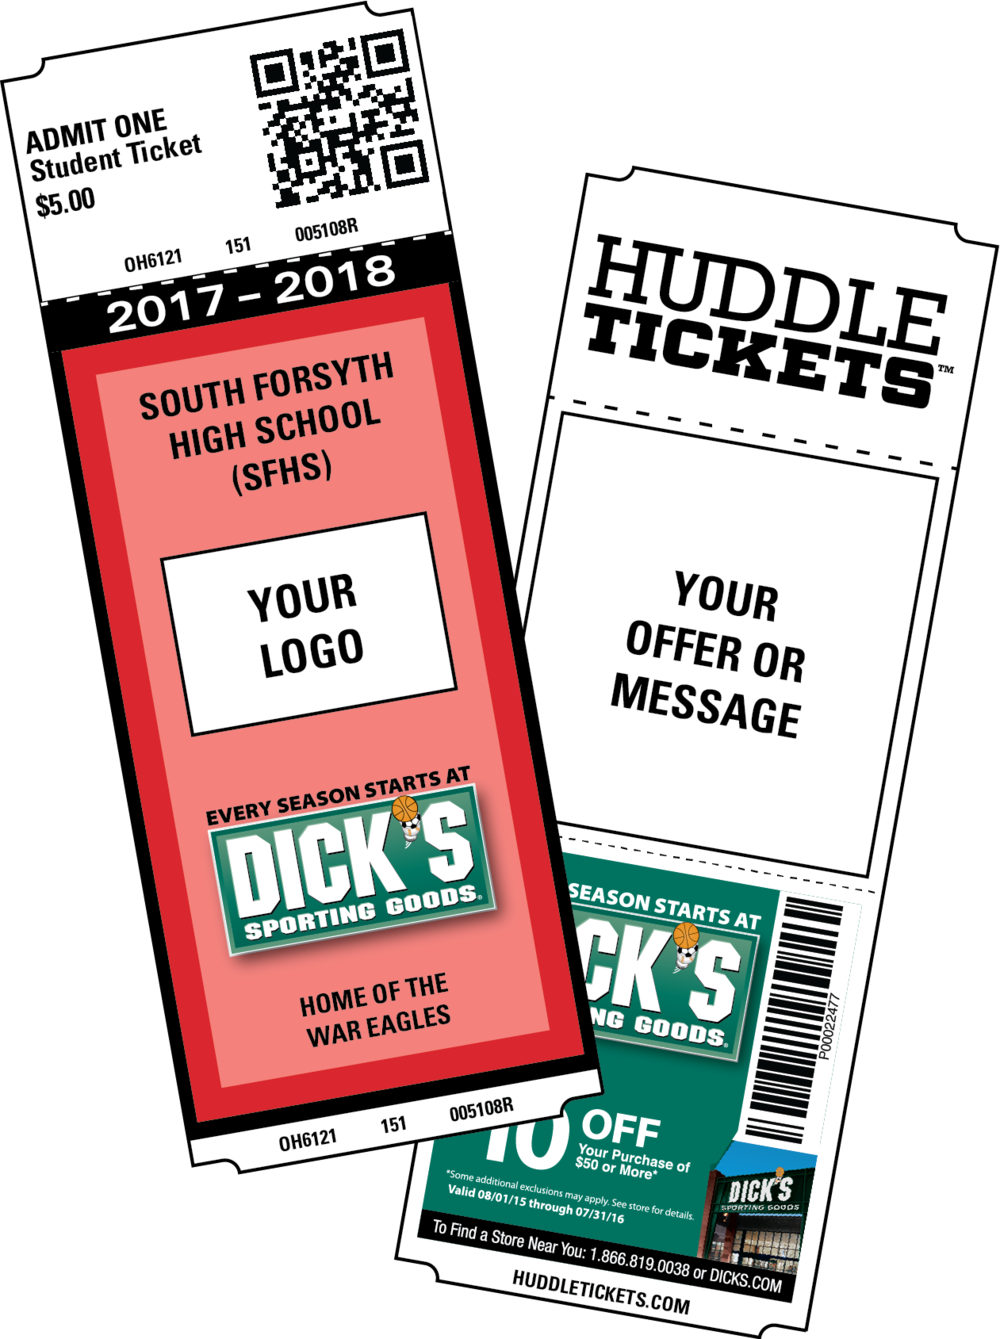 HuddleTickets_071316.png